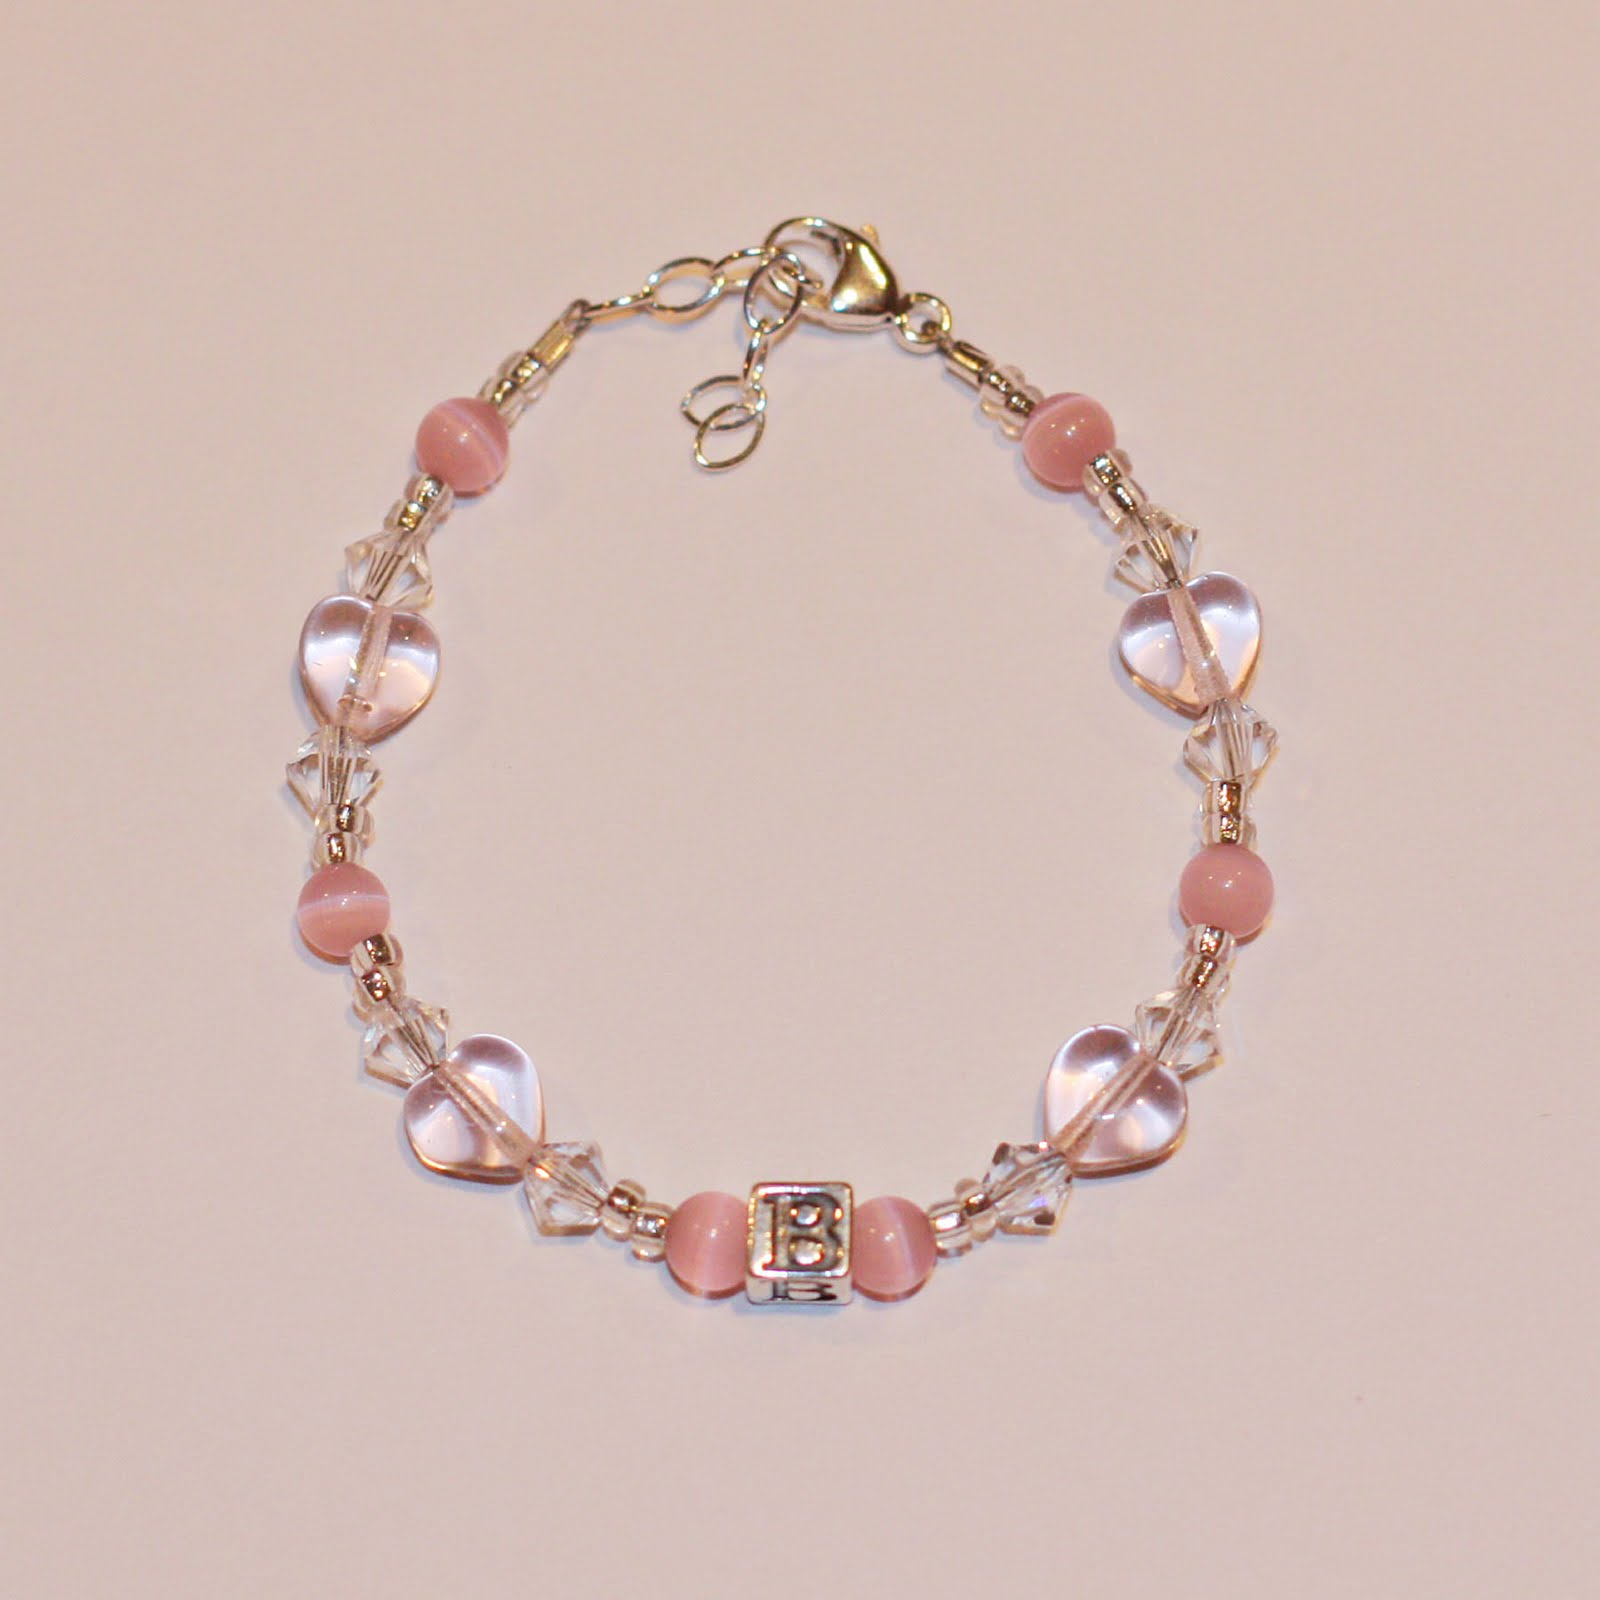 amy j. delightful blog: New Bracelet Styles